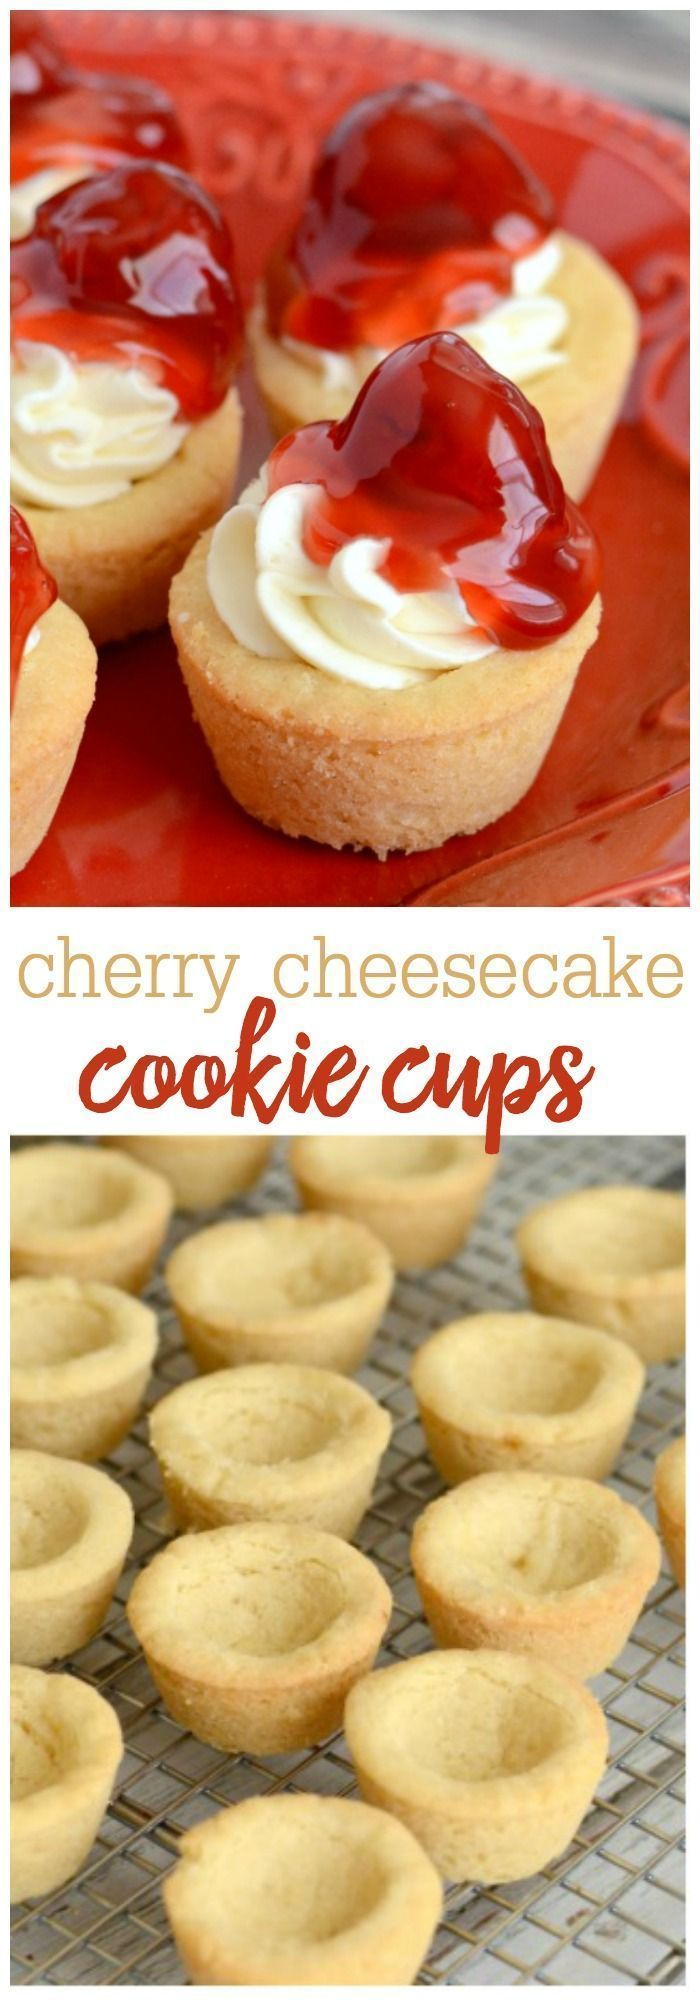 Mini Cherry Cheesecake Cookie Cups is part of Cookie cups recipe - Mini Cherry Cheesecake Cookie Cups  All the flavor of cherry cheesecake, served in mini sugar cookie cups! They're super easy to make and are perfect for serving a crowd!!